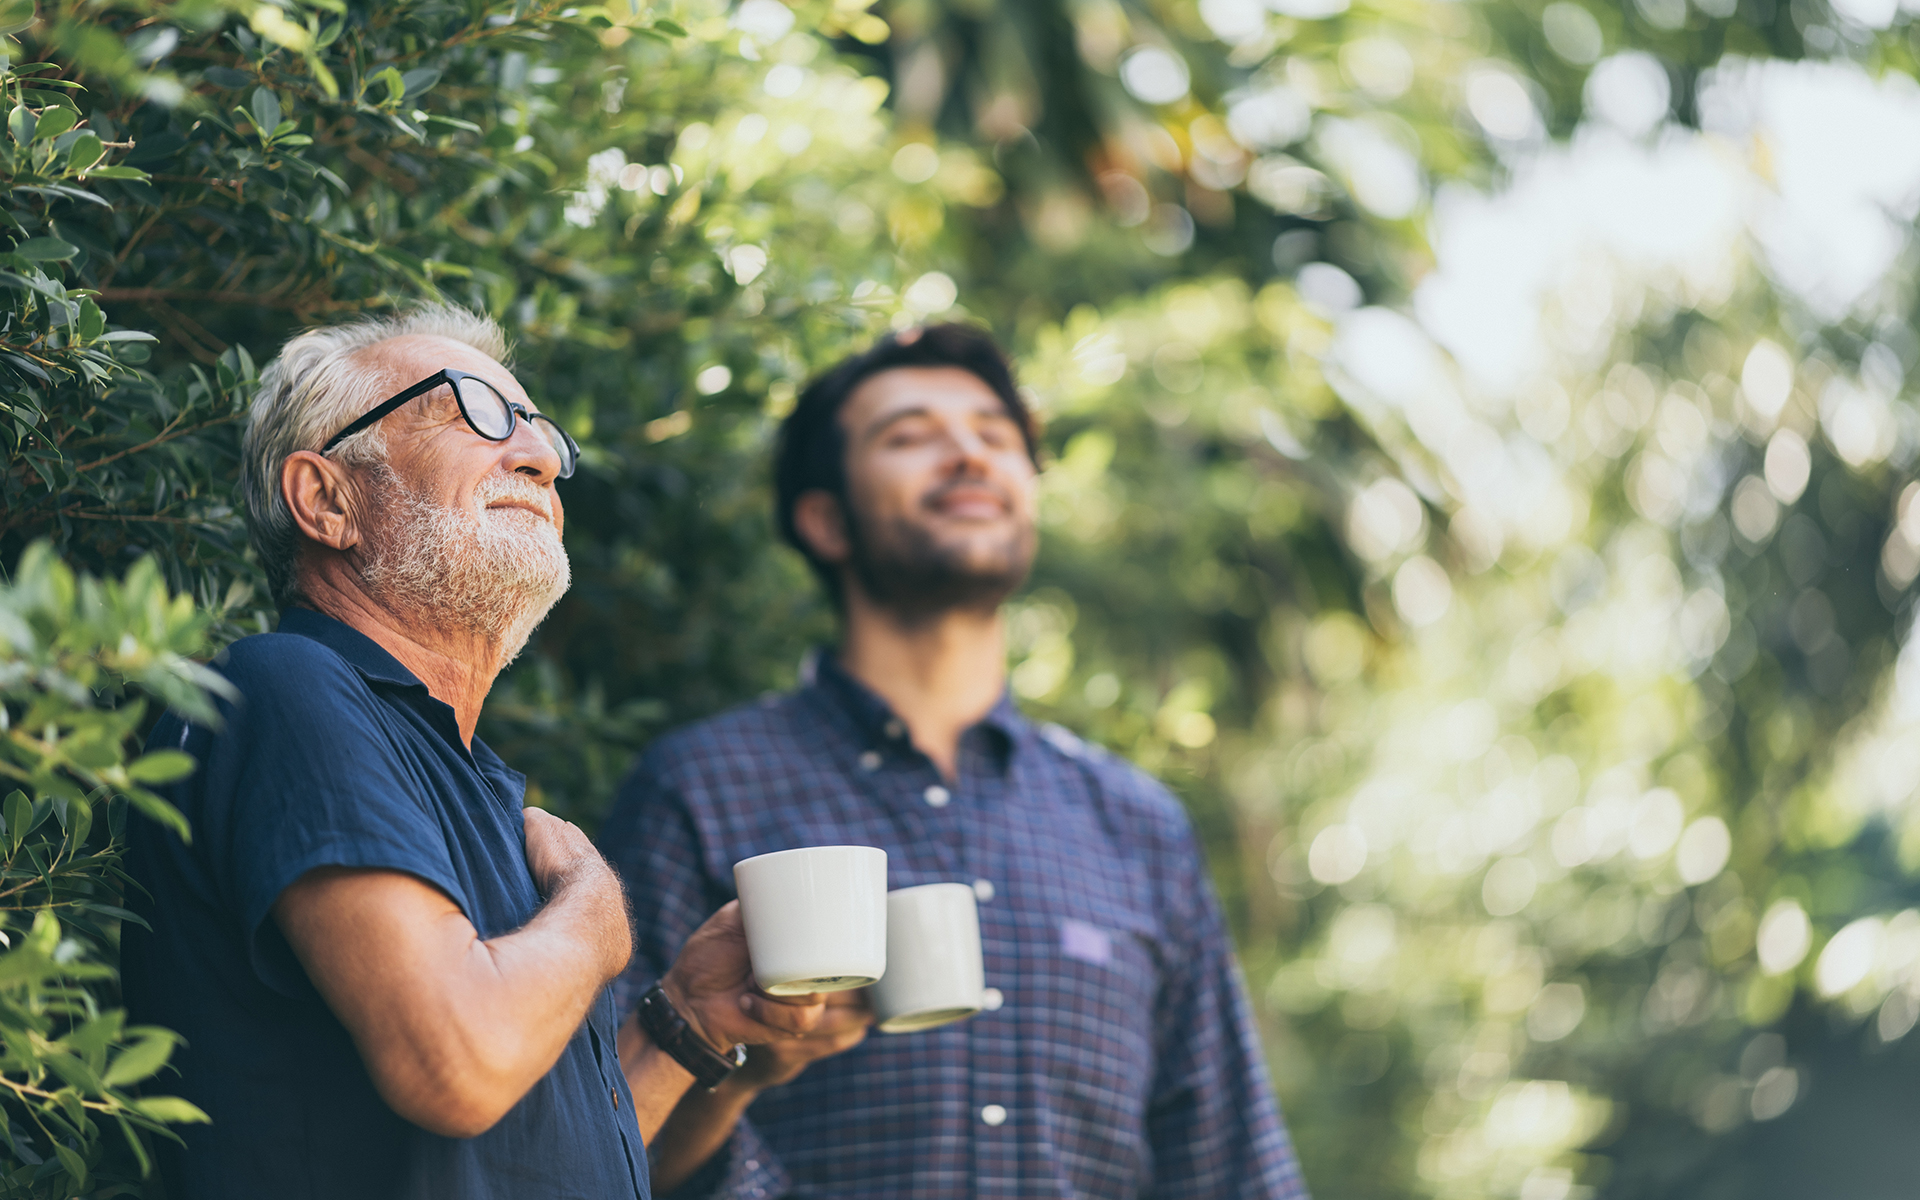 The Importance of Noticing Small Moments of Beauty - Old father and son, Morning coffee in a garden